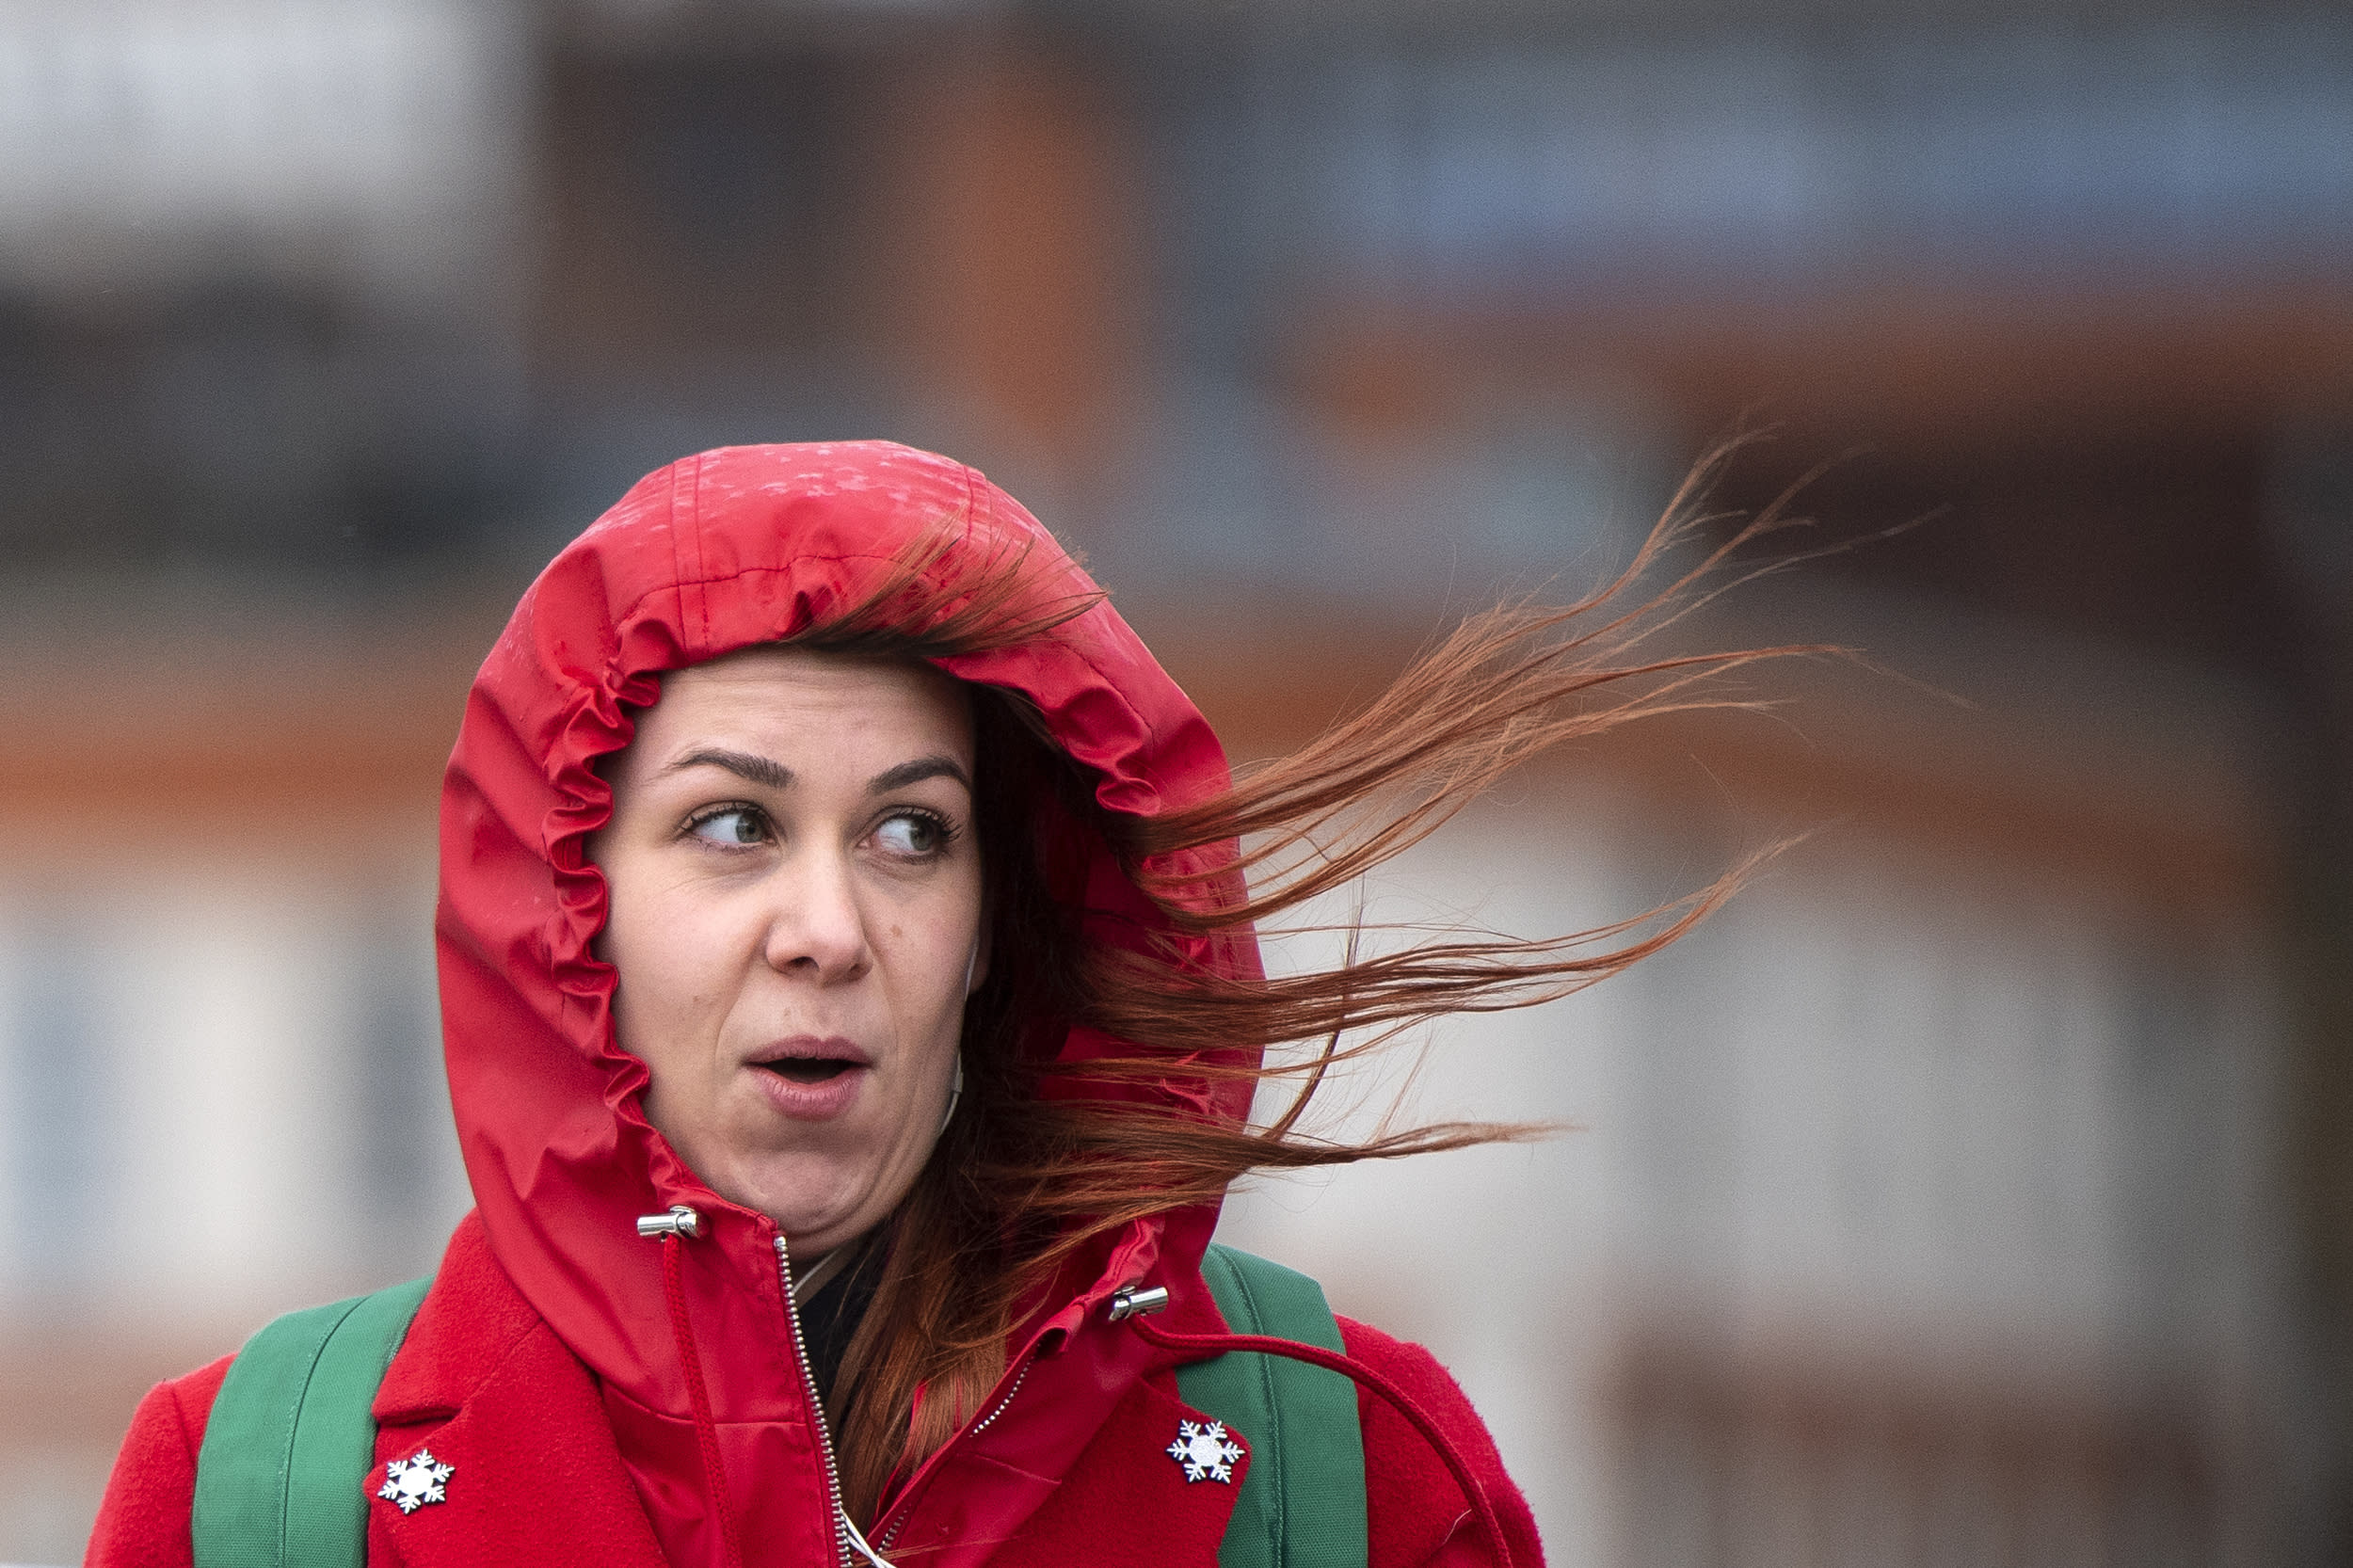 A woman battles against strong winds and rain on Waterloo Bridge in central London, as Storm Erik brought strong winds to parts of the country.